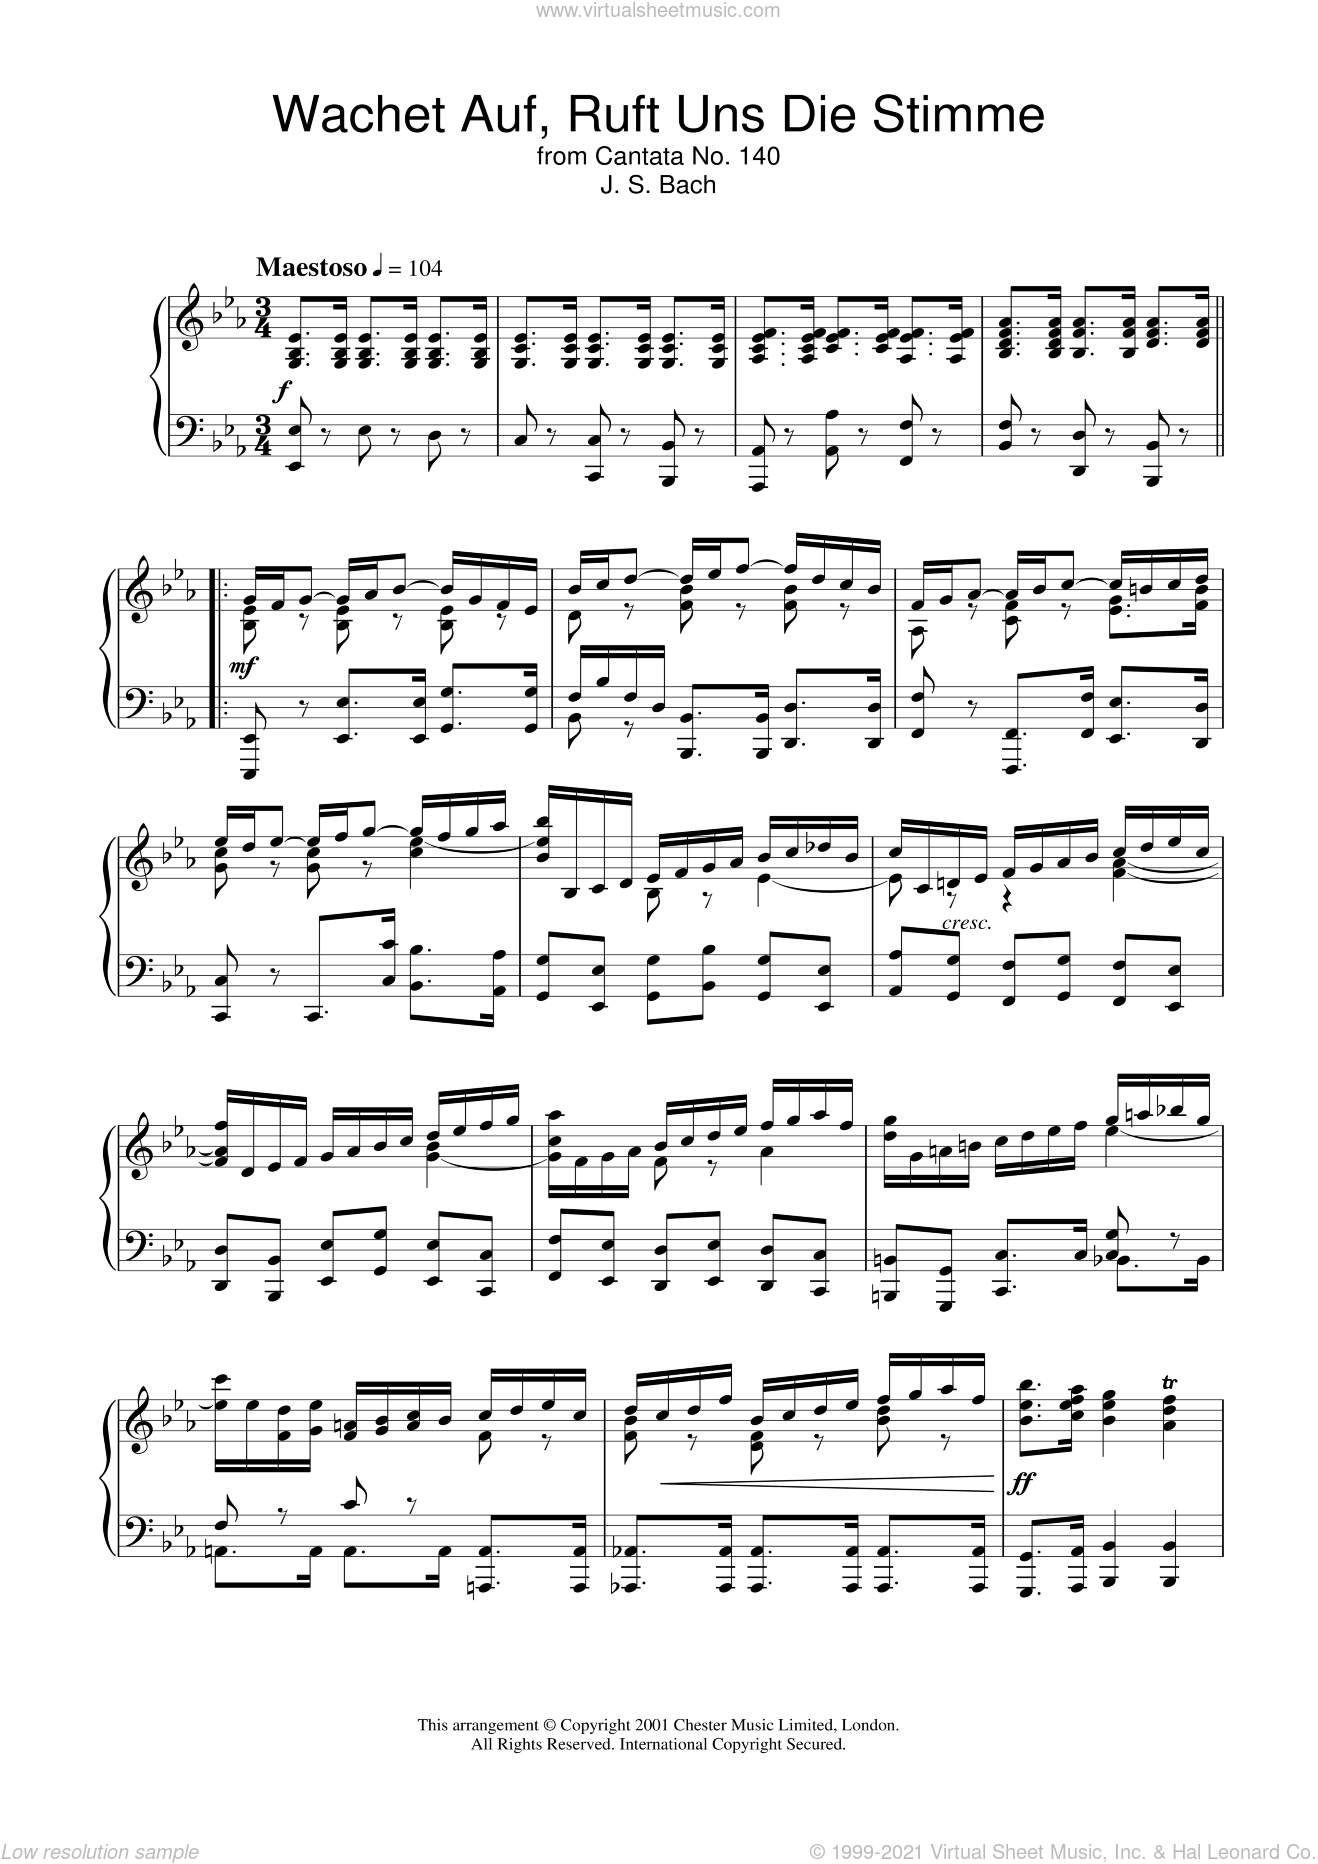 Wachet Auf, Ruft Uns Die Stimme (from Cantata No. 140) sheet music for piano solo by Johann Sebastian Bach